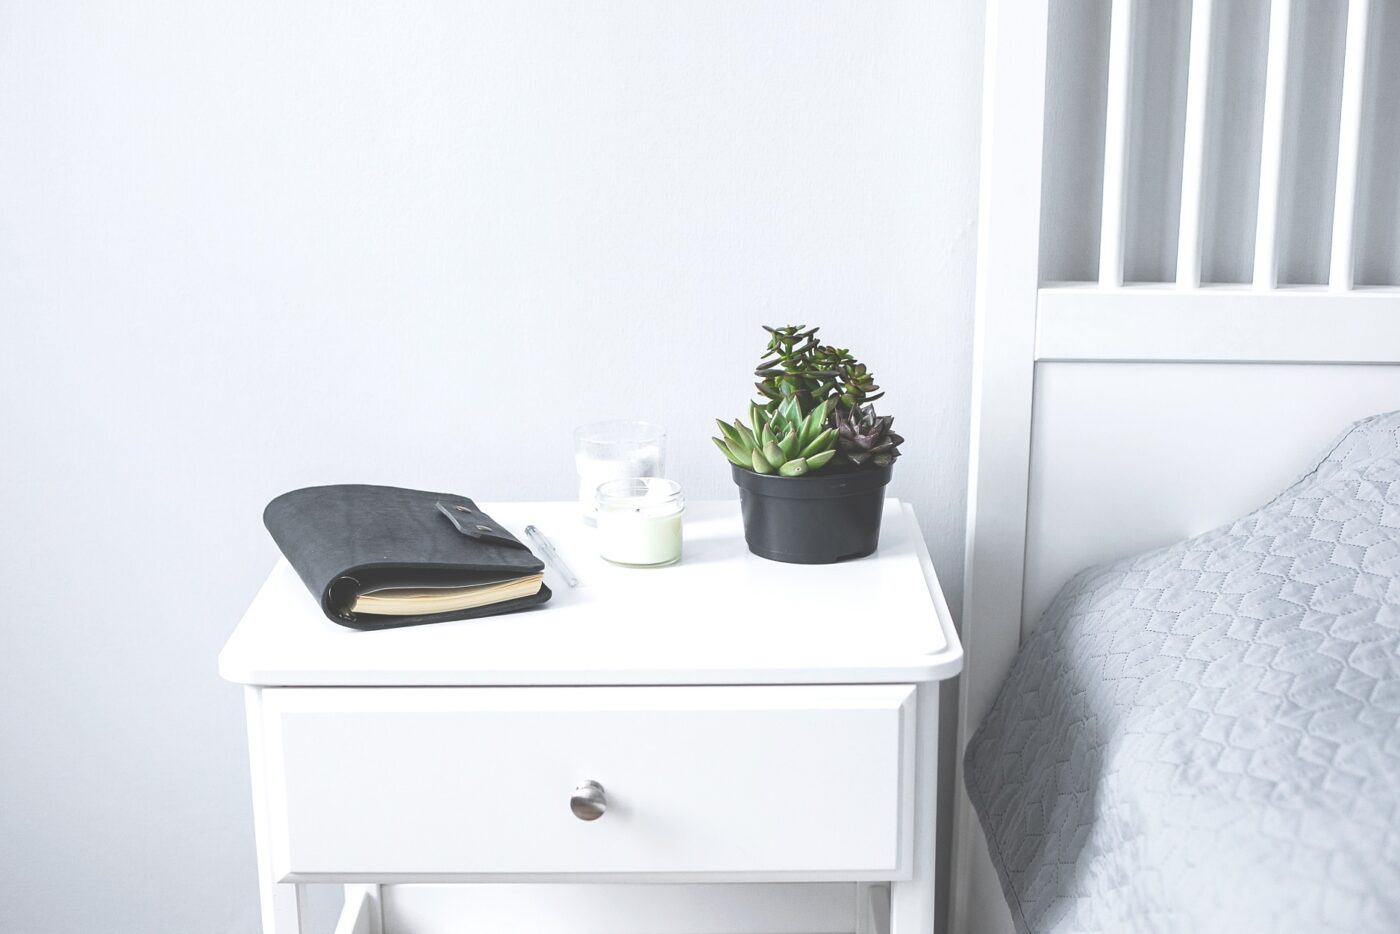 Tiny succulents, candles and black notebook on bedside table in the bedroom in scandinavian style home. Scandinavian interior in gray and white colors